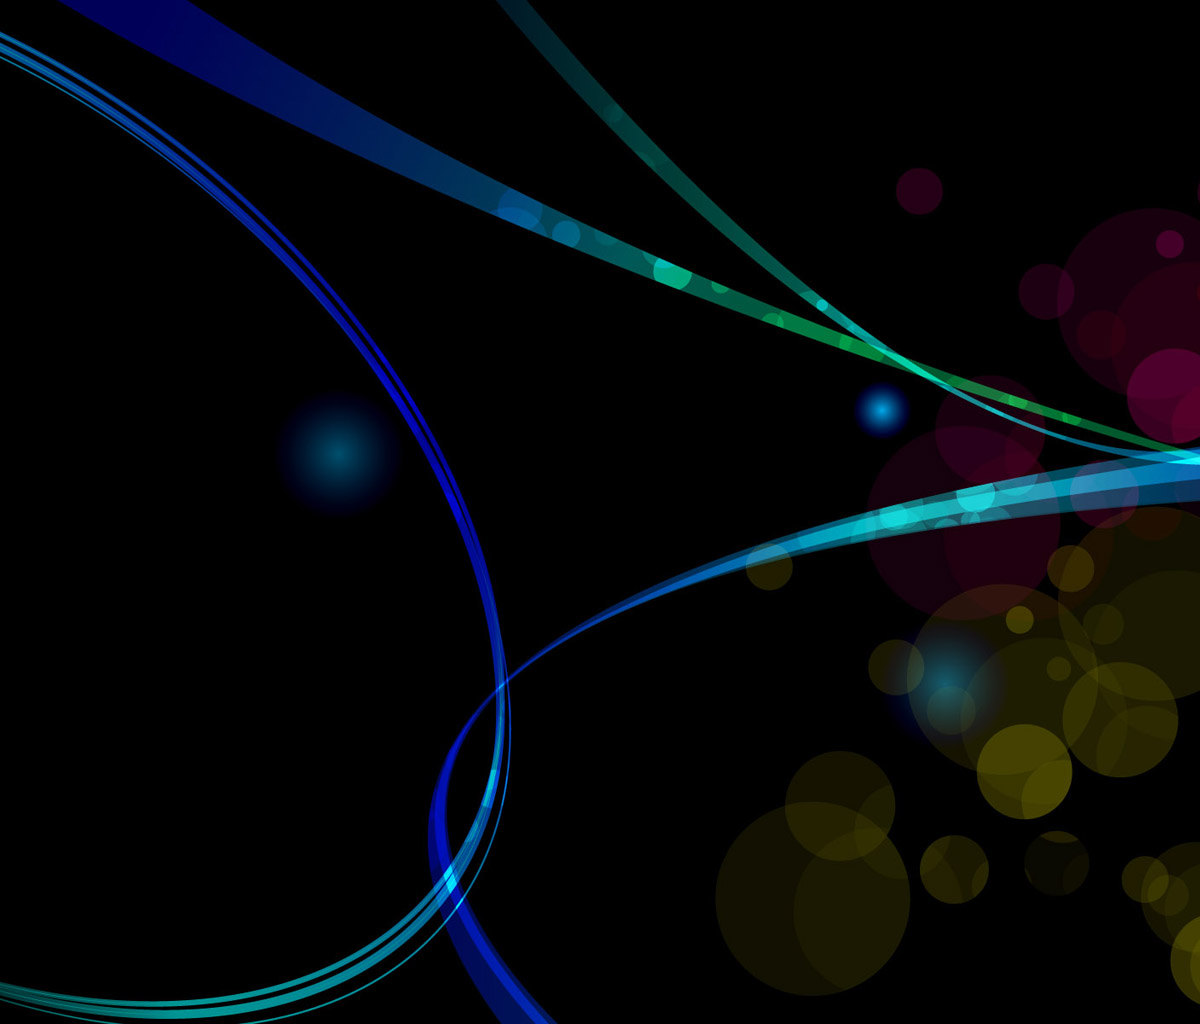 Abstract Wallpaper For Tablet PC Background